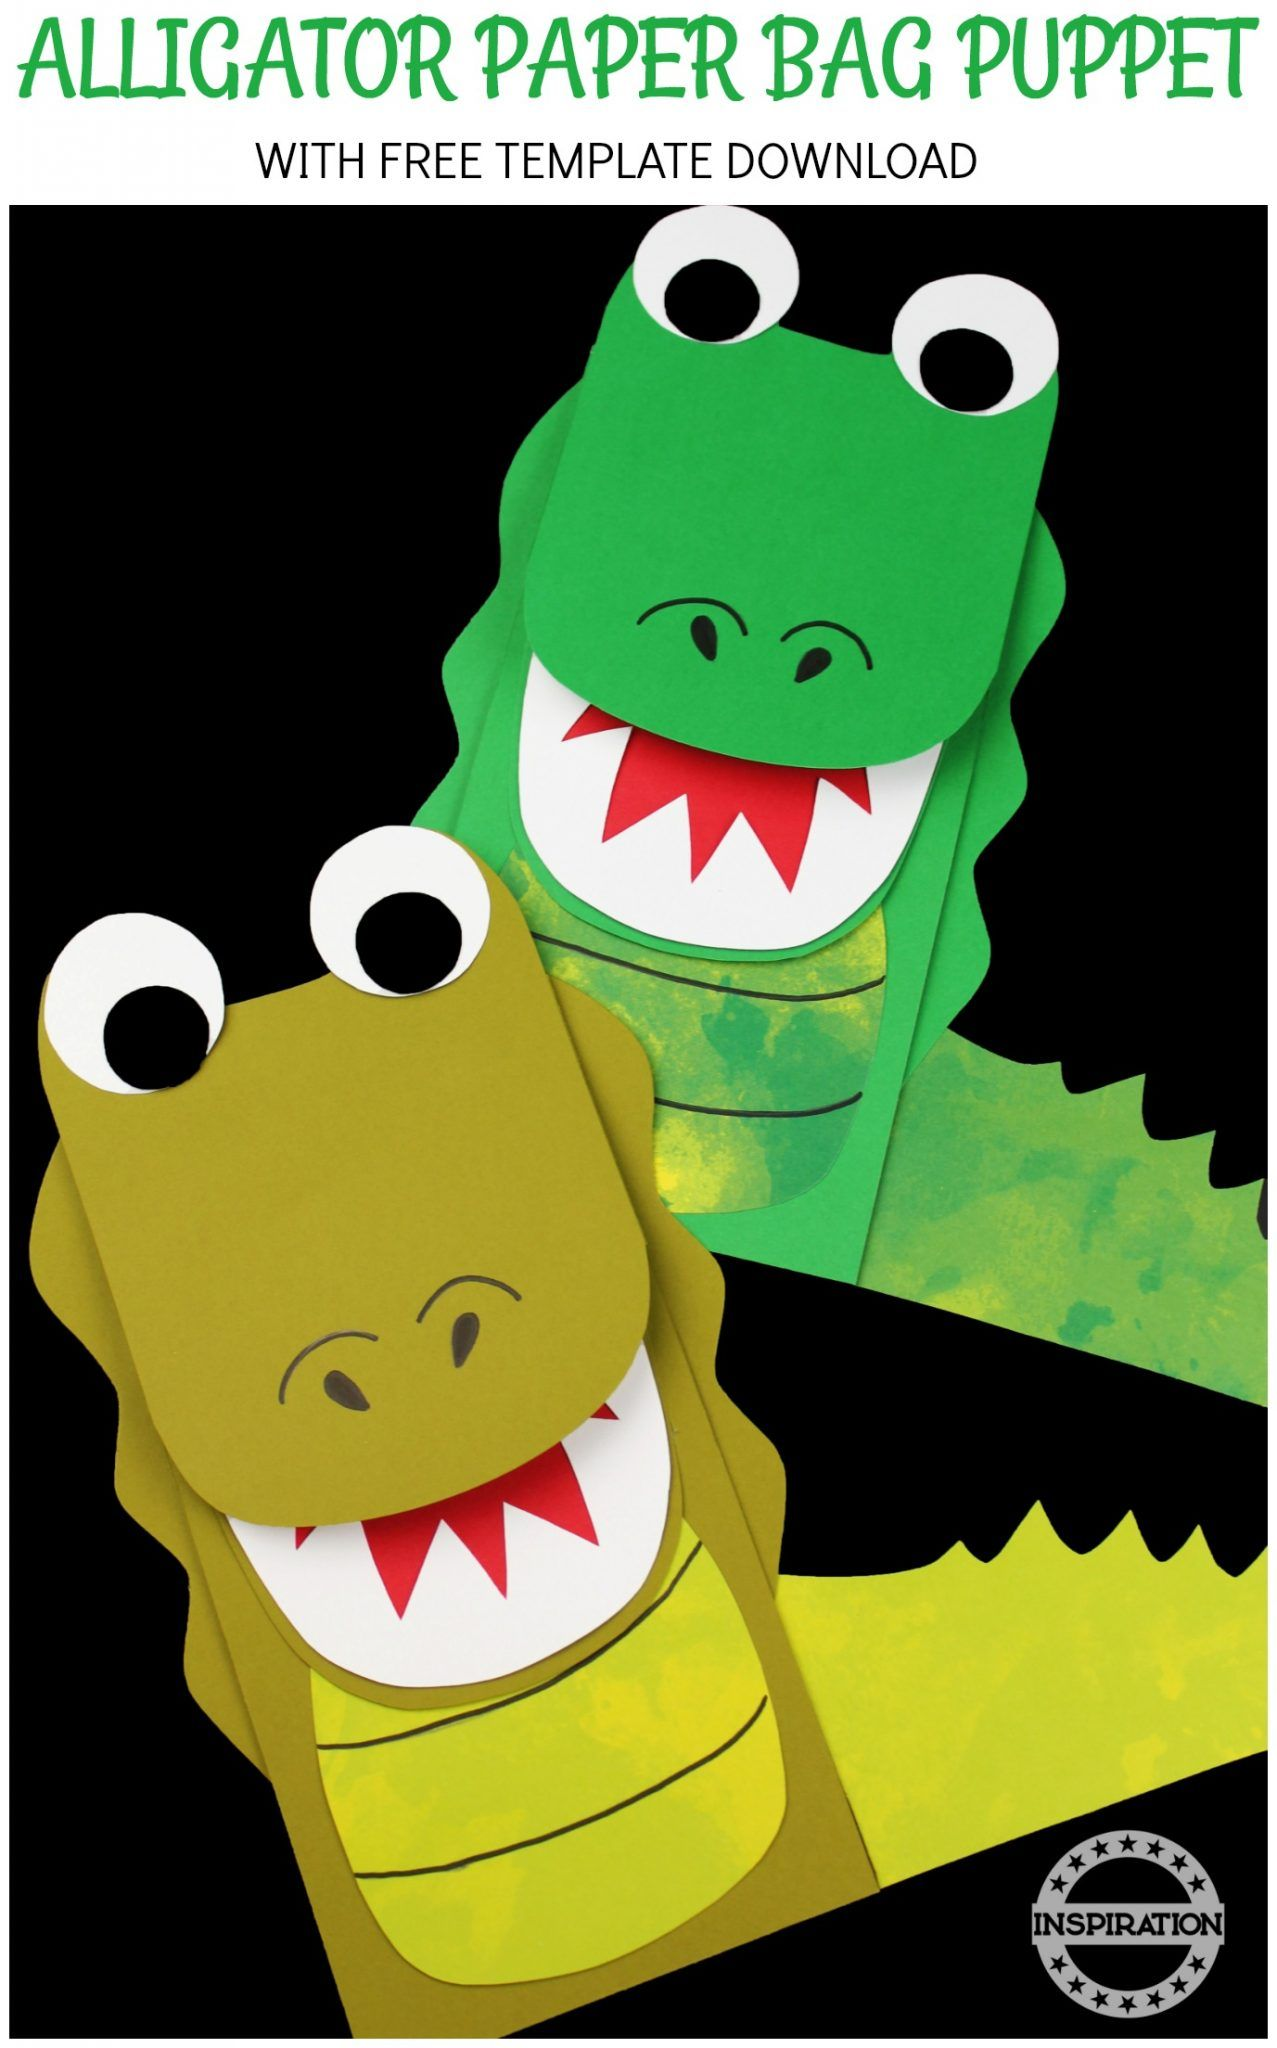 Alligator Craft And Paper Bag Puppet For Preschoolers